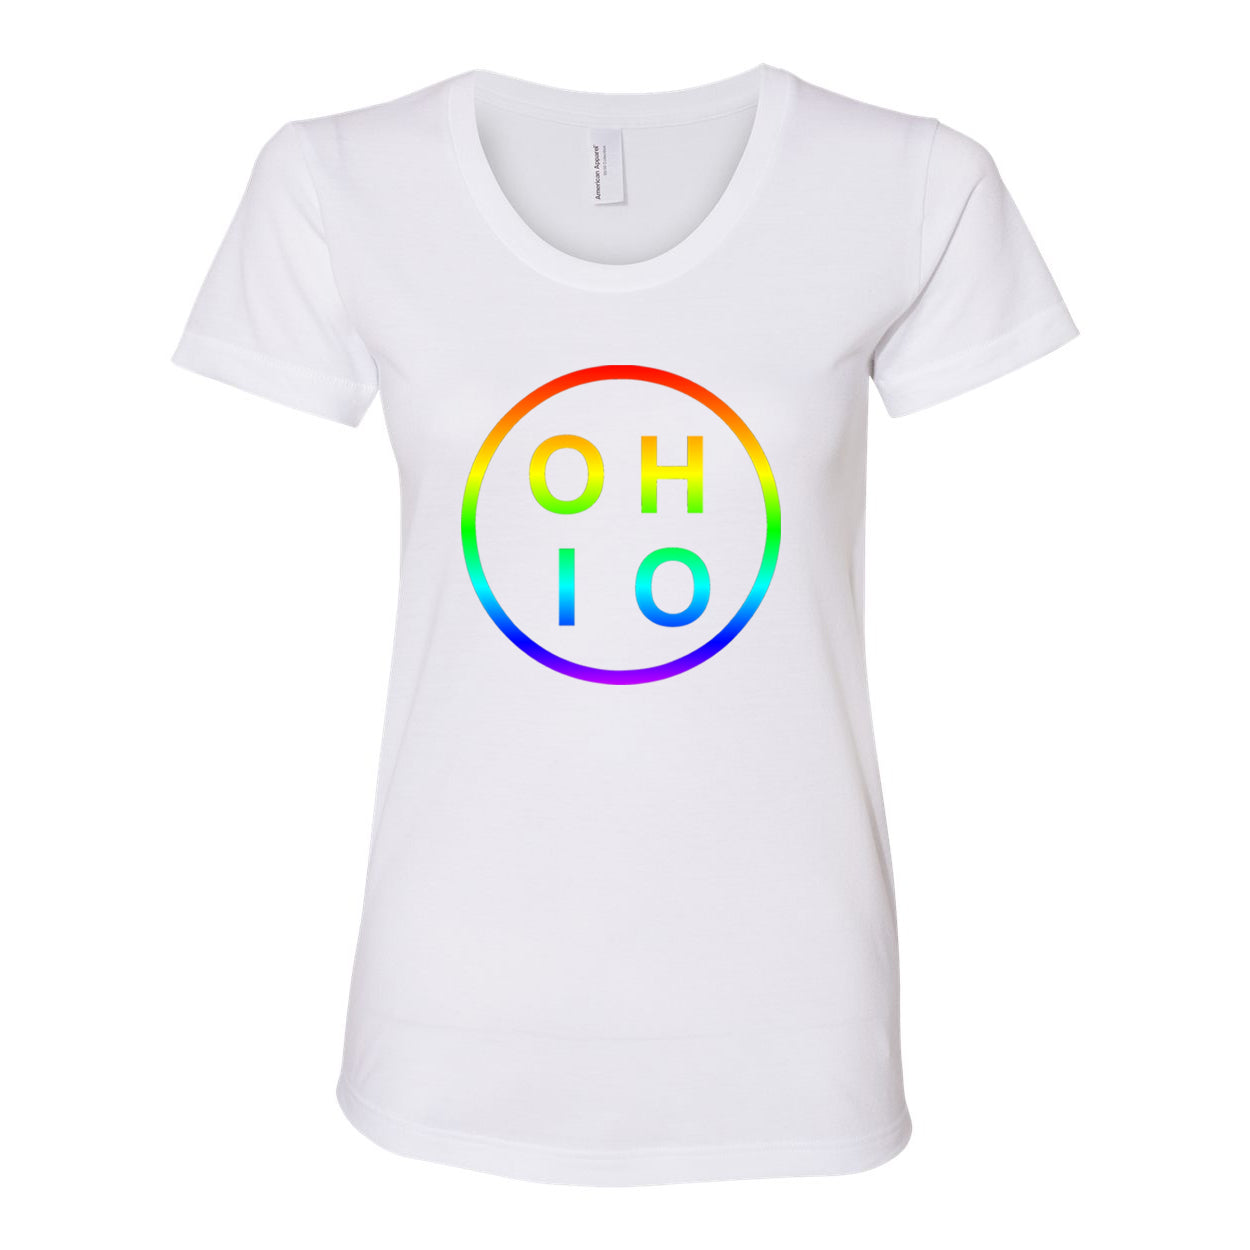 Pride Circle Ohio Women's Fit Soft Blend T-Shirt - Clothe Ohio - Soft Ohio Shirts